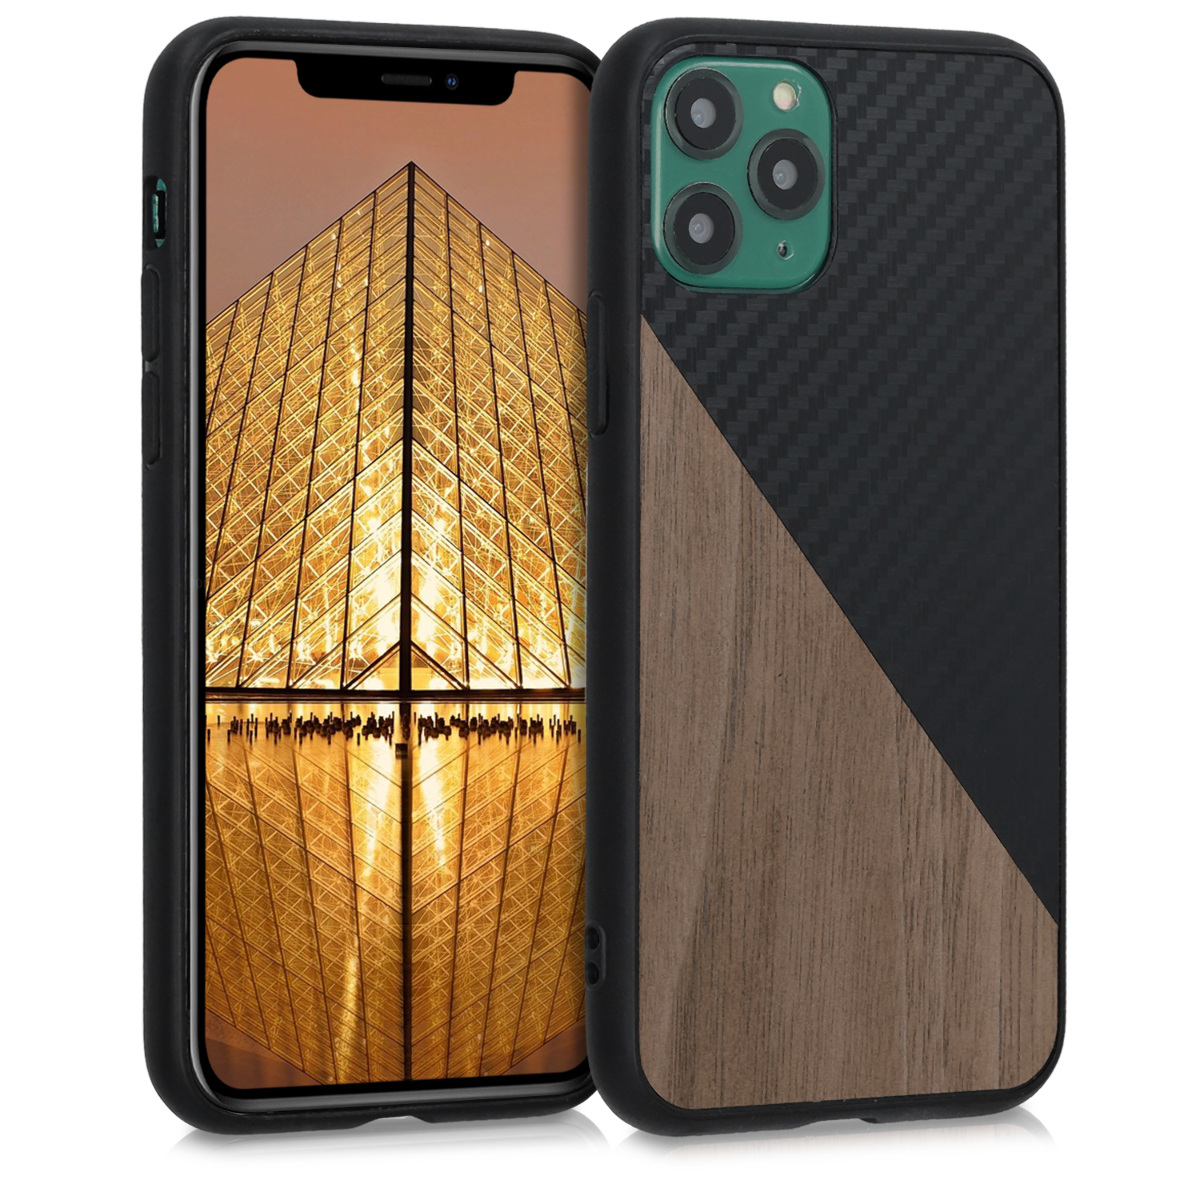 KW Σκληρή Θήκη Apple iPhone 11 Pro - TPU Bumper and Wood / Carbon Fiber - Black / Dark Brown (51143.01)